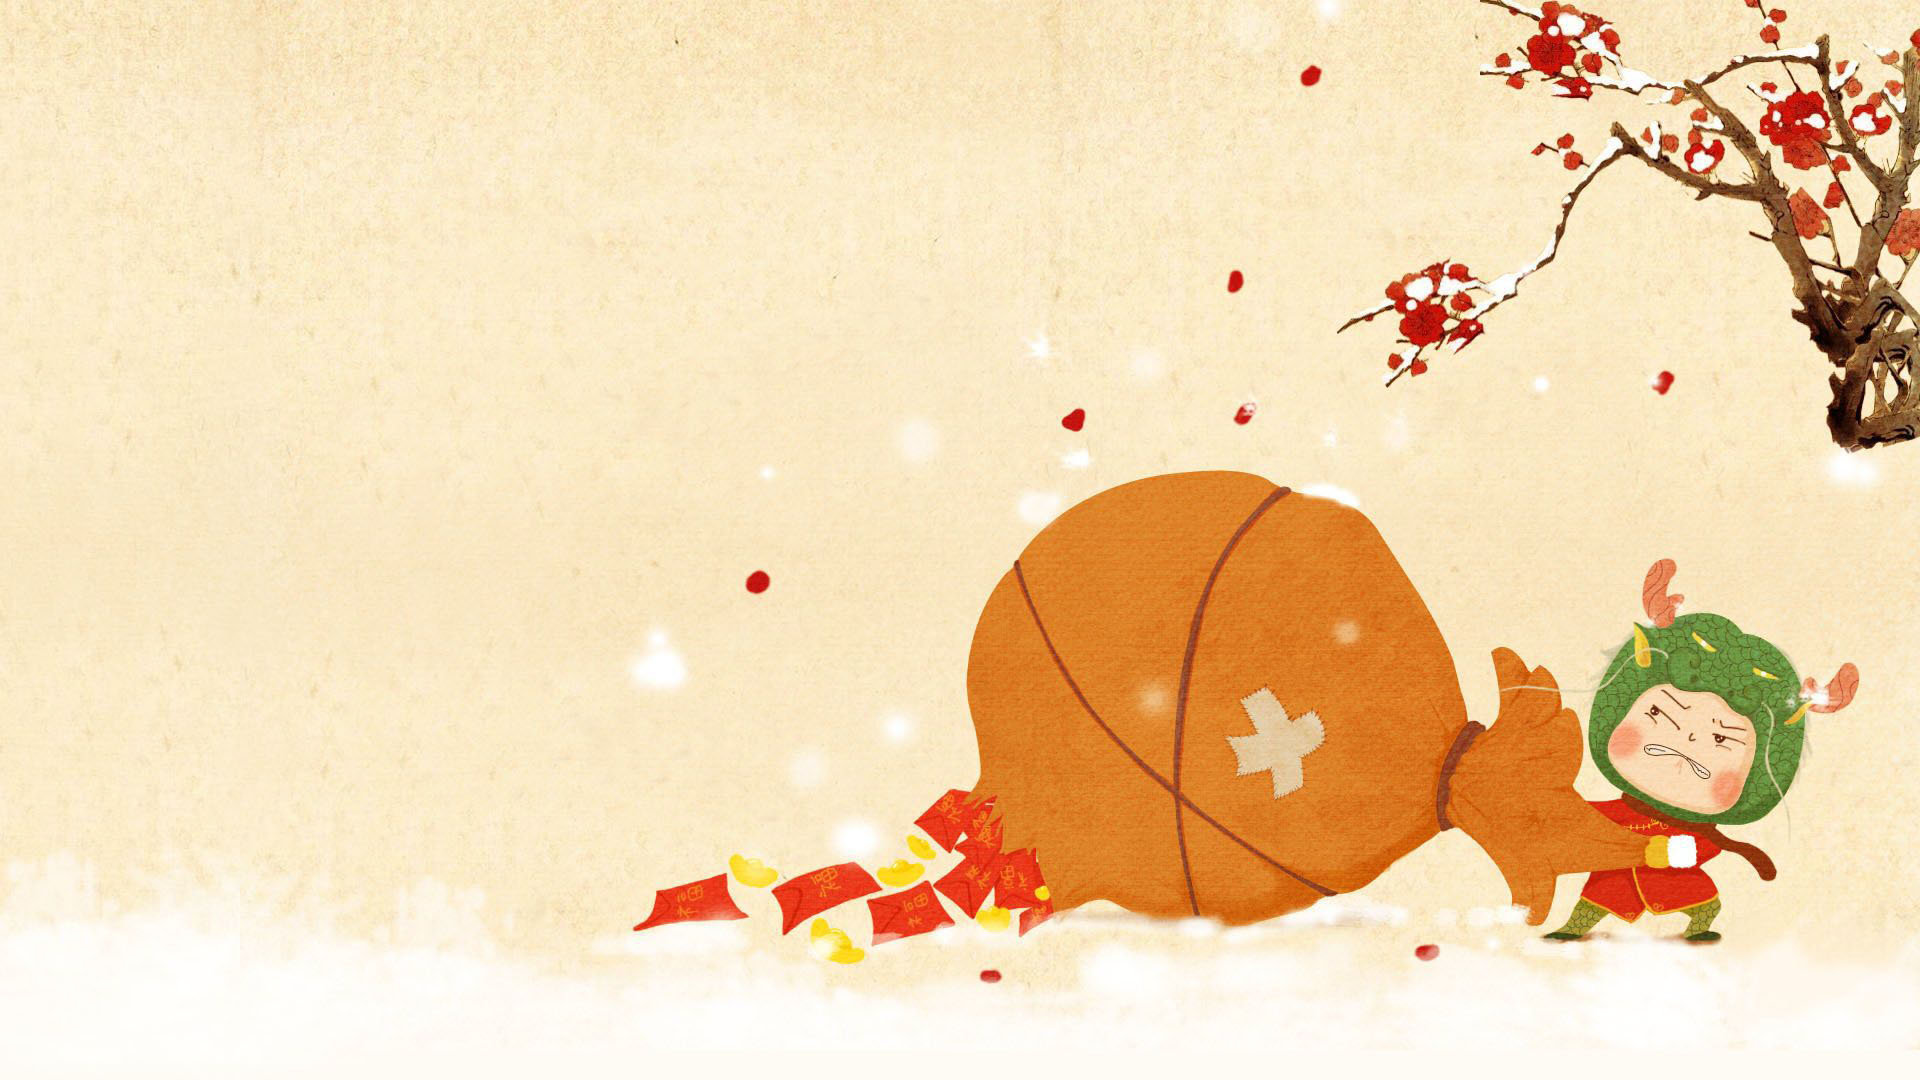 free chinese new year high quality background id156052 for 1080p desktop